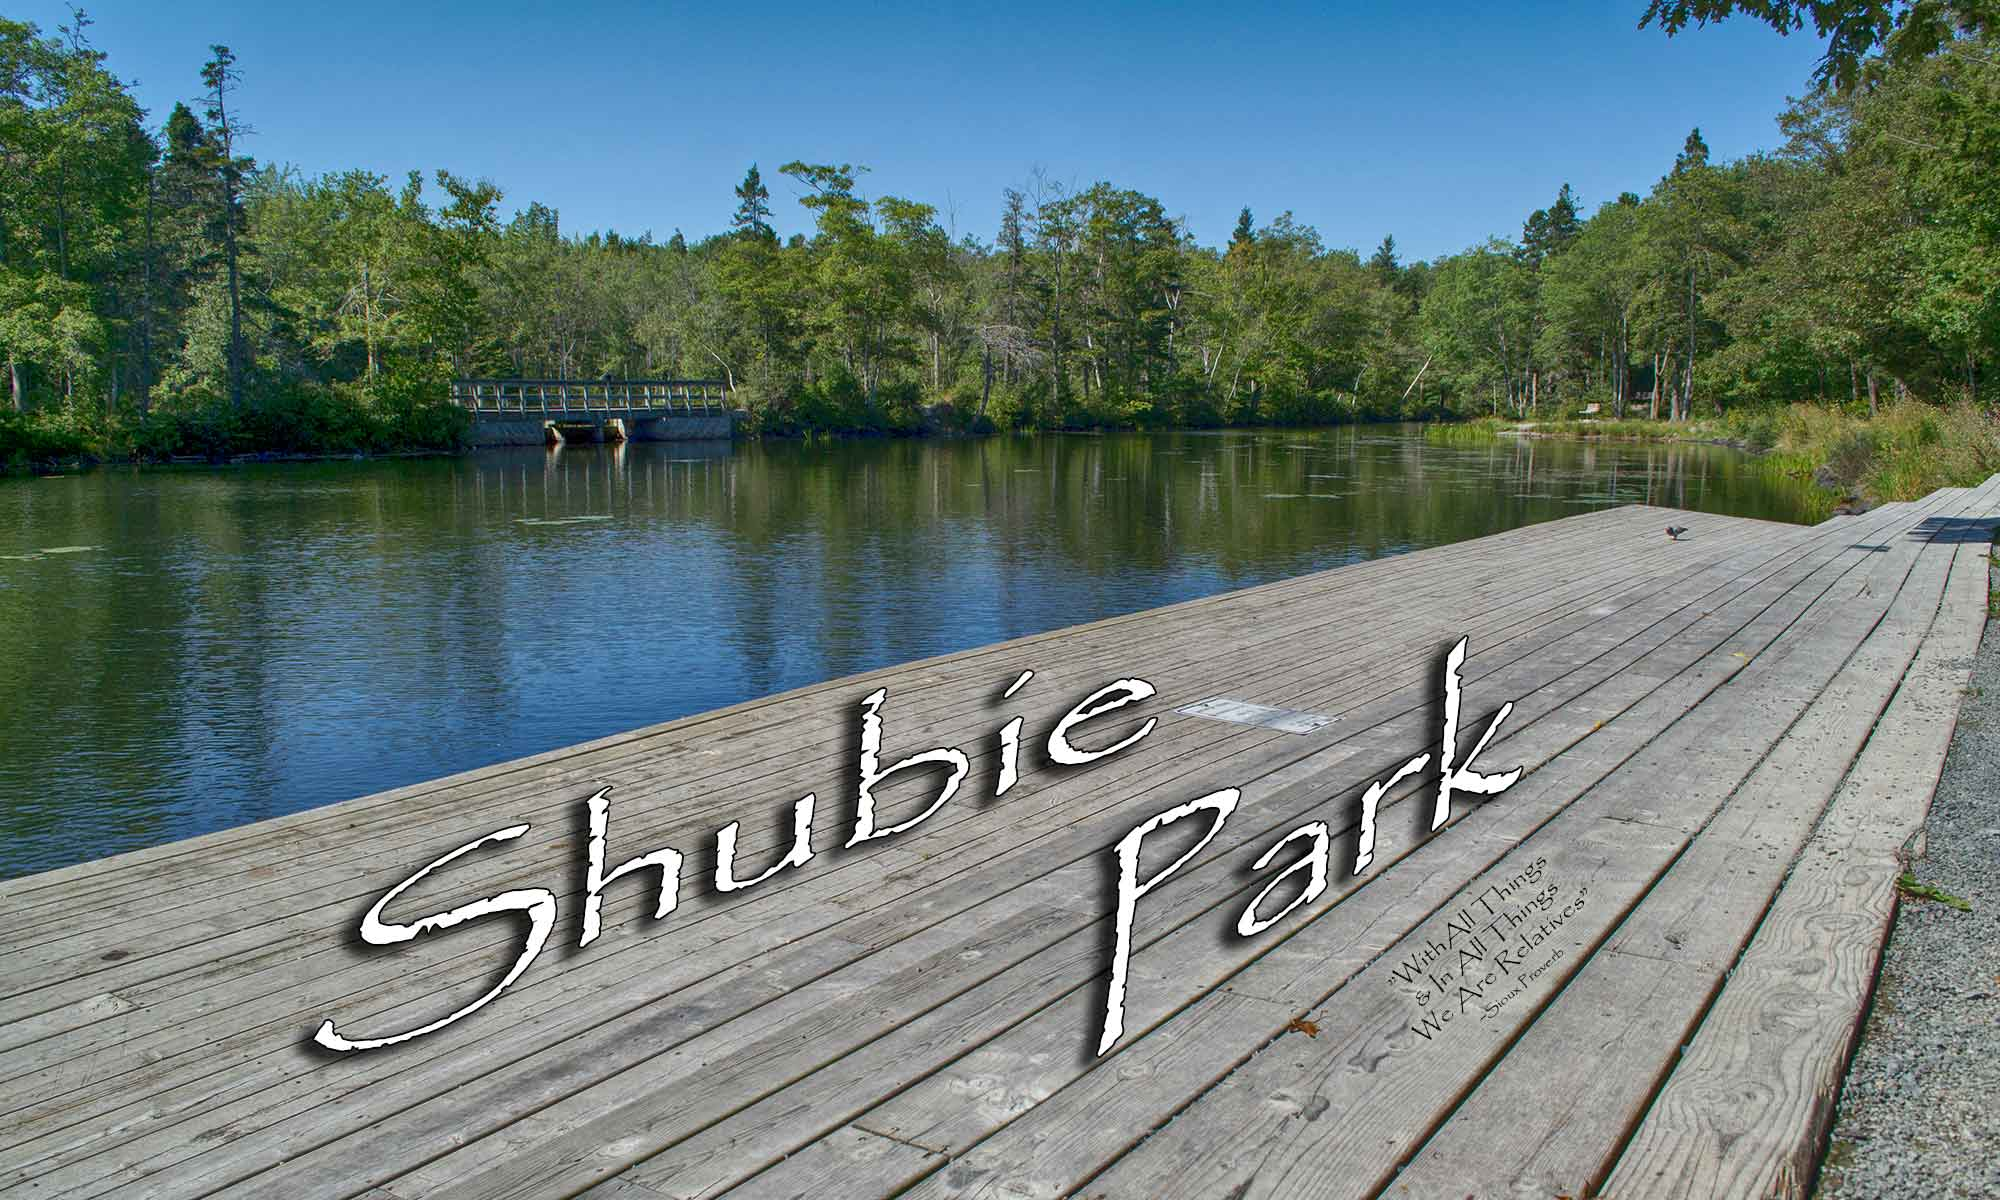 Shubie Park Dartmouth Nova Scotia